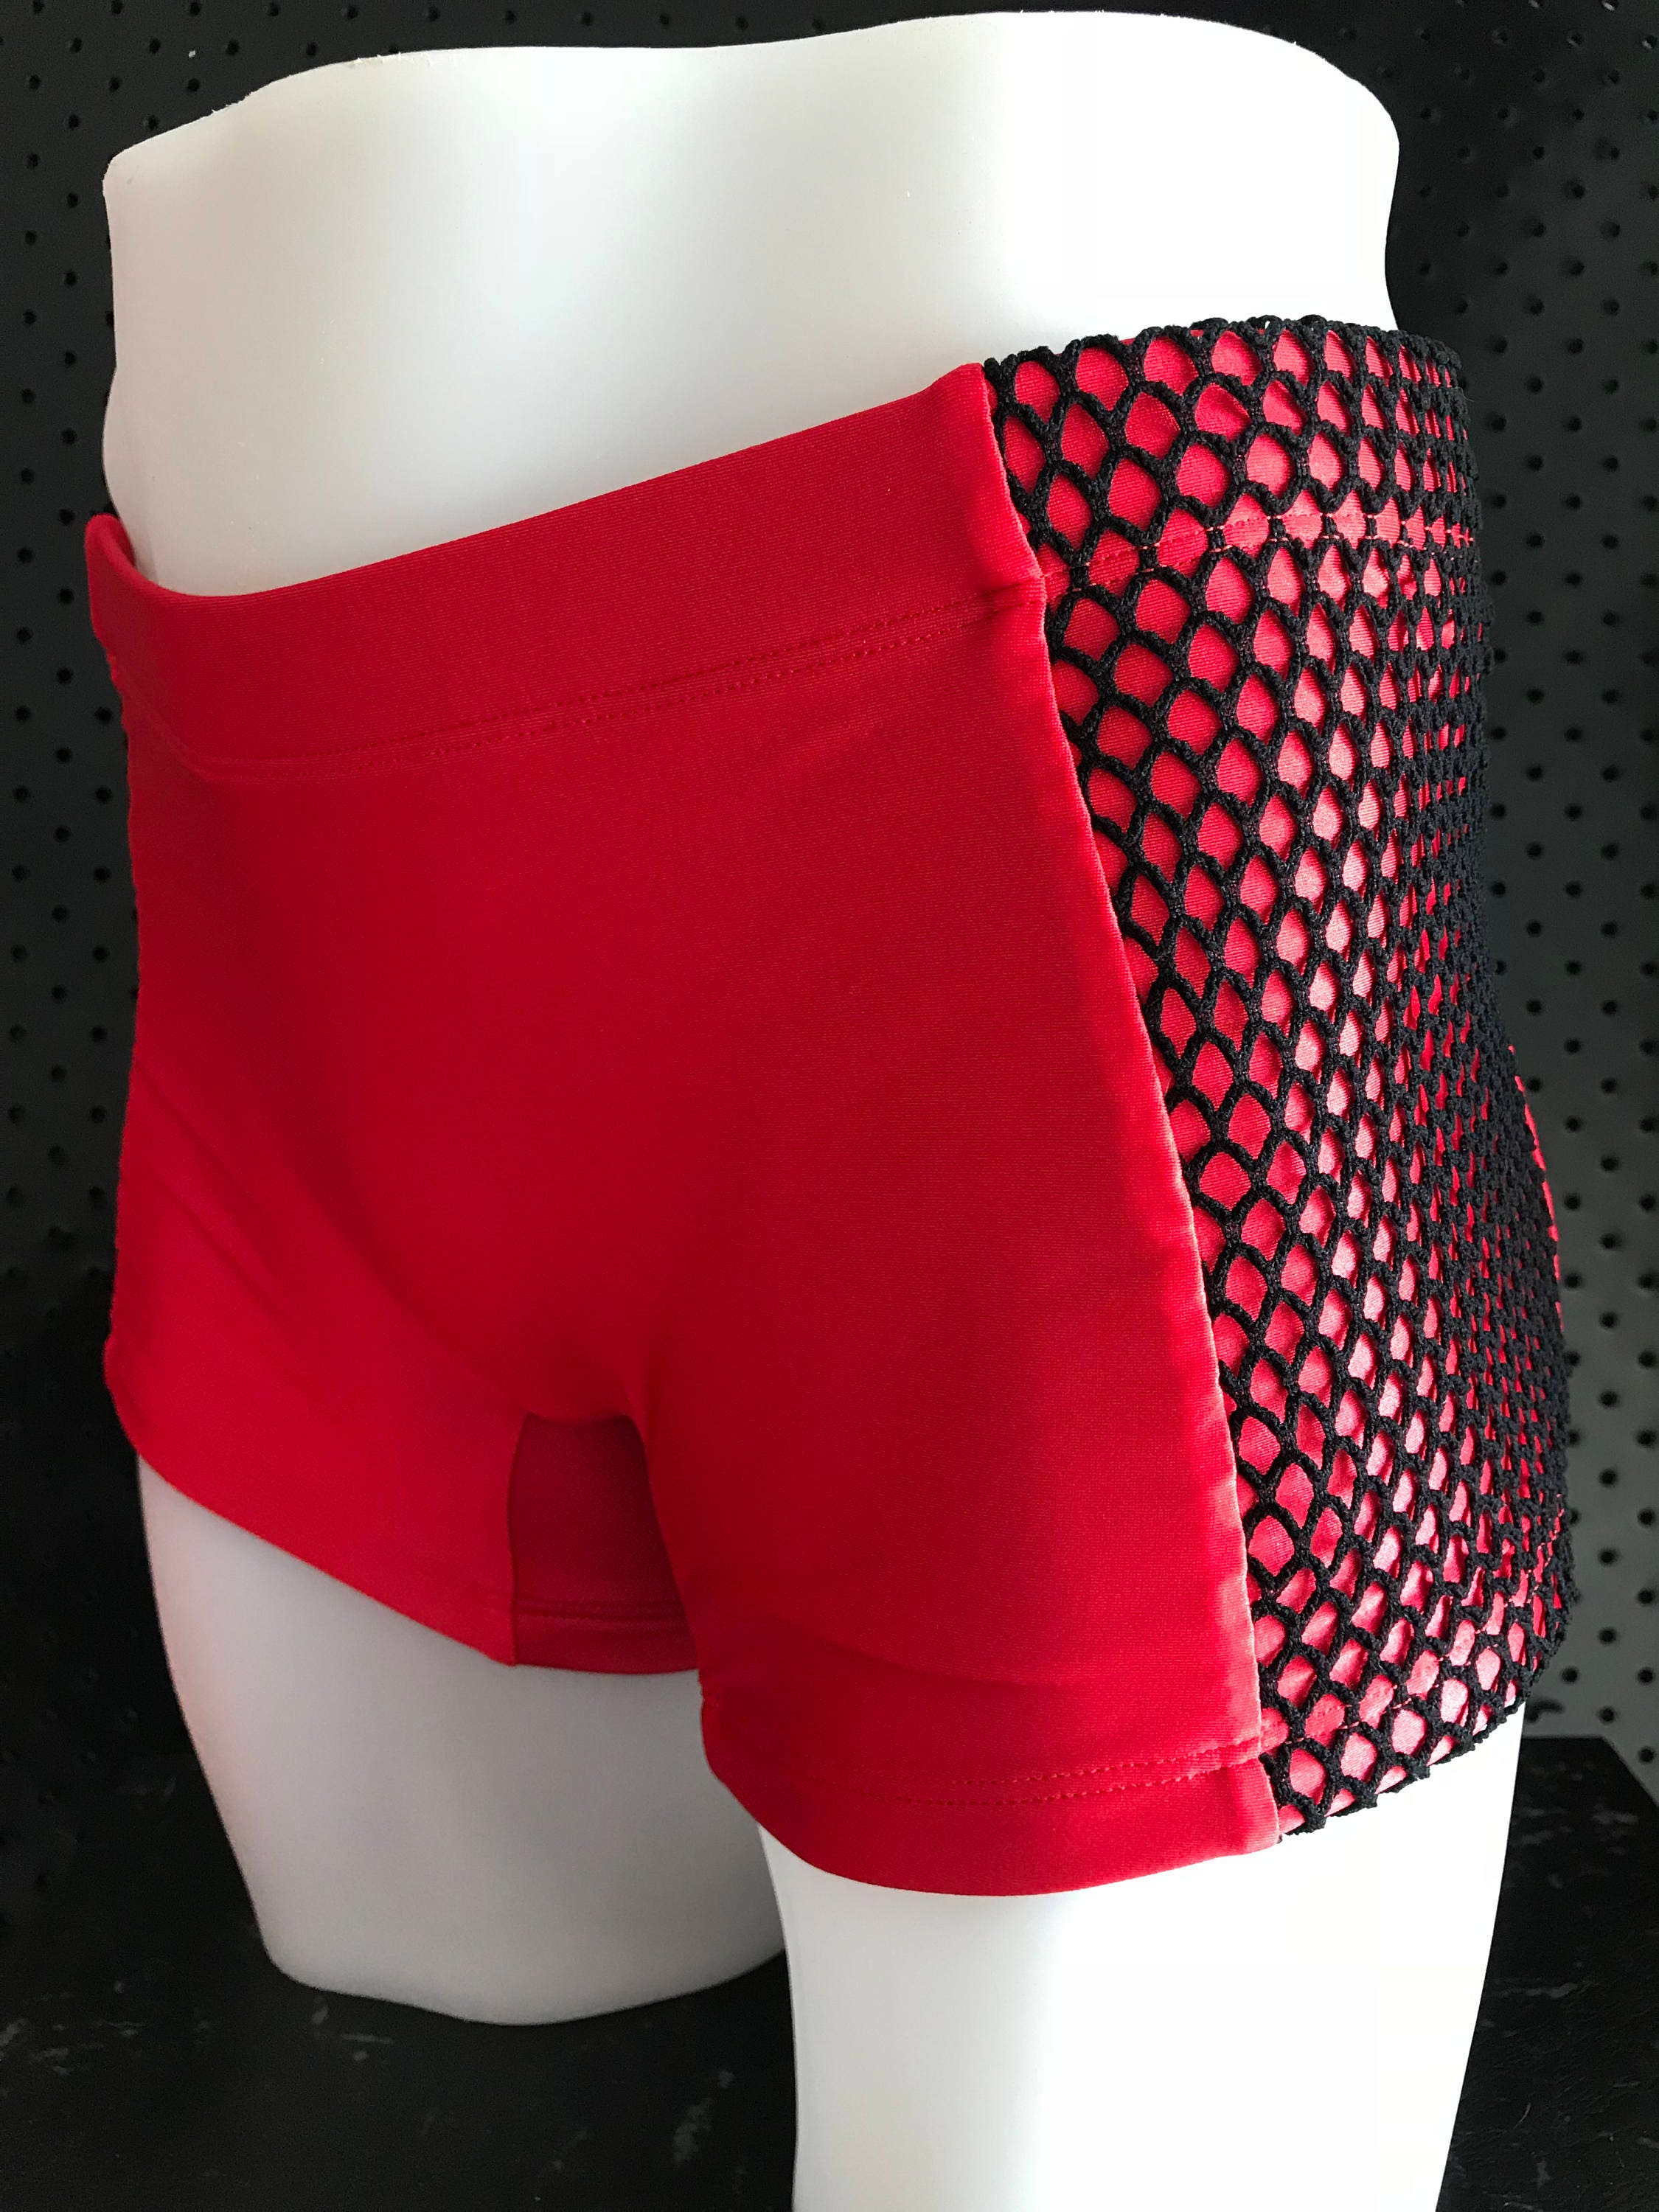 5ecf69fc55 INTRODUCING our Mens euro swim truck brand: ROGUEswim ** REDlight/BLACK  fishnet mesh panelled swim short. gallery photo gallery photo ...